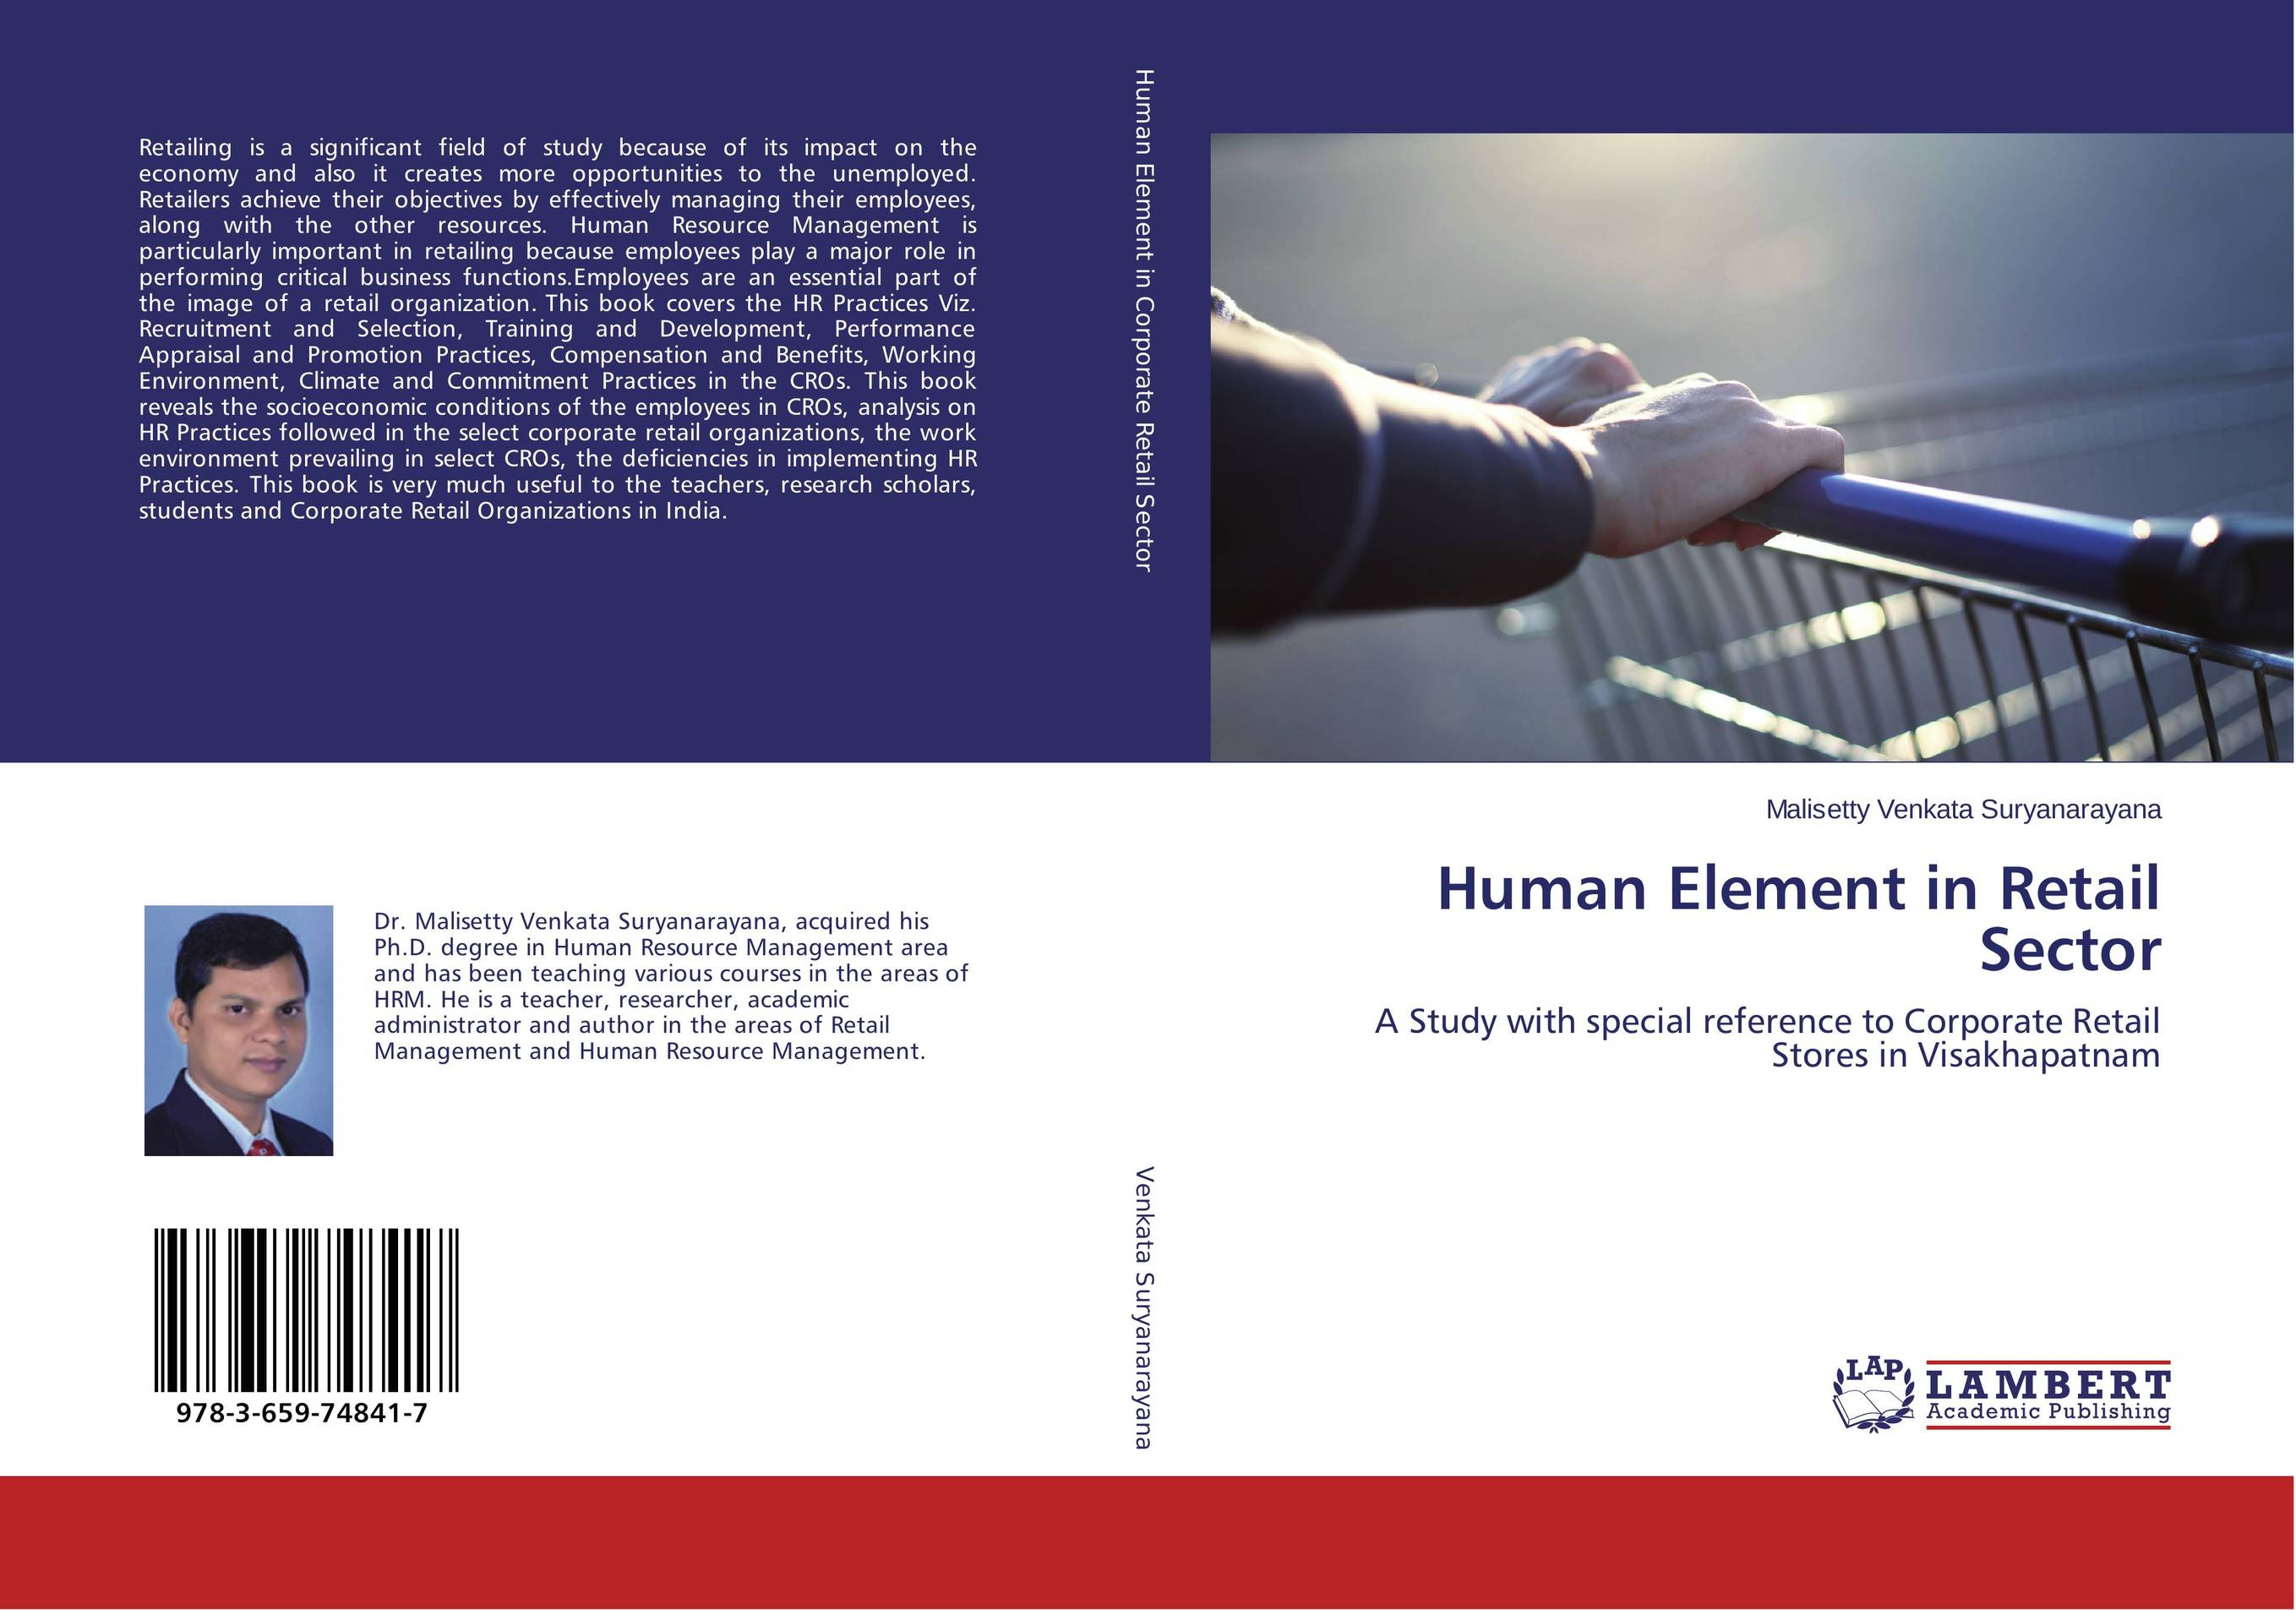 Human Element in Retail Sector